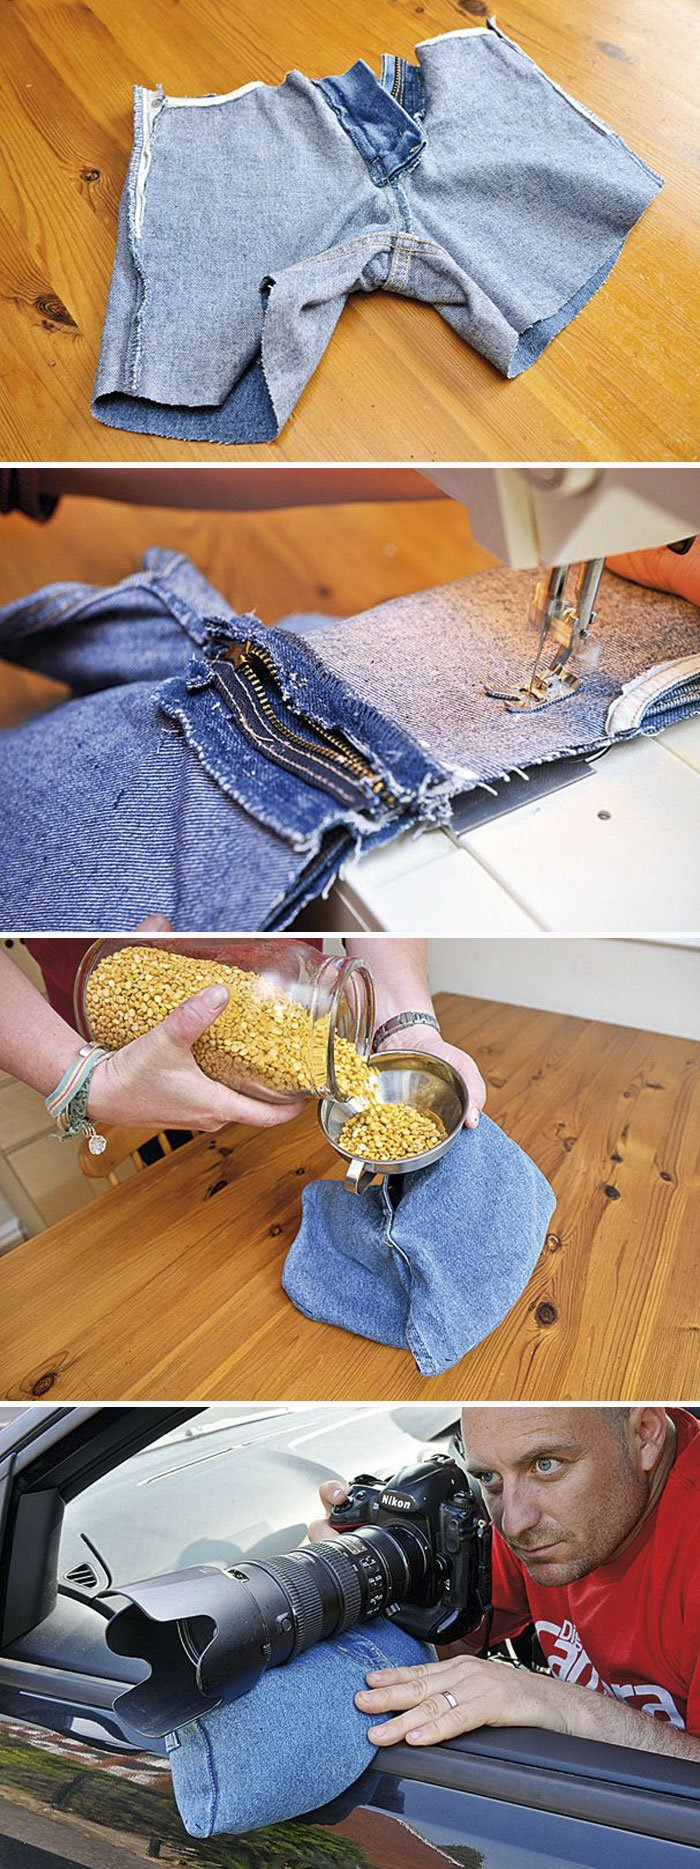 Reduce Camera Shake With A Bag Of Lentils